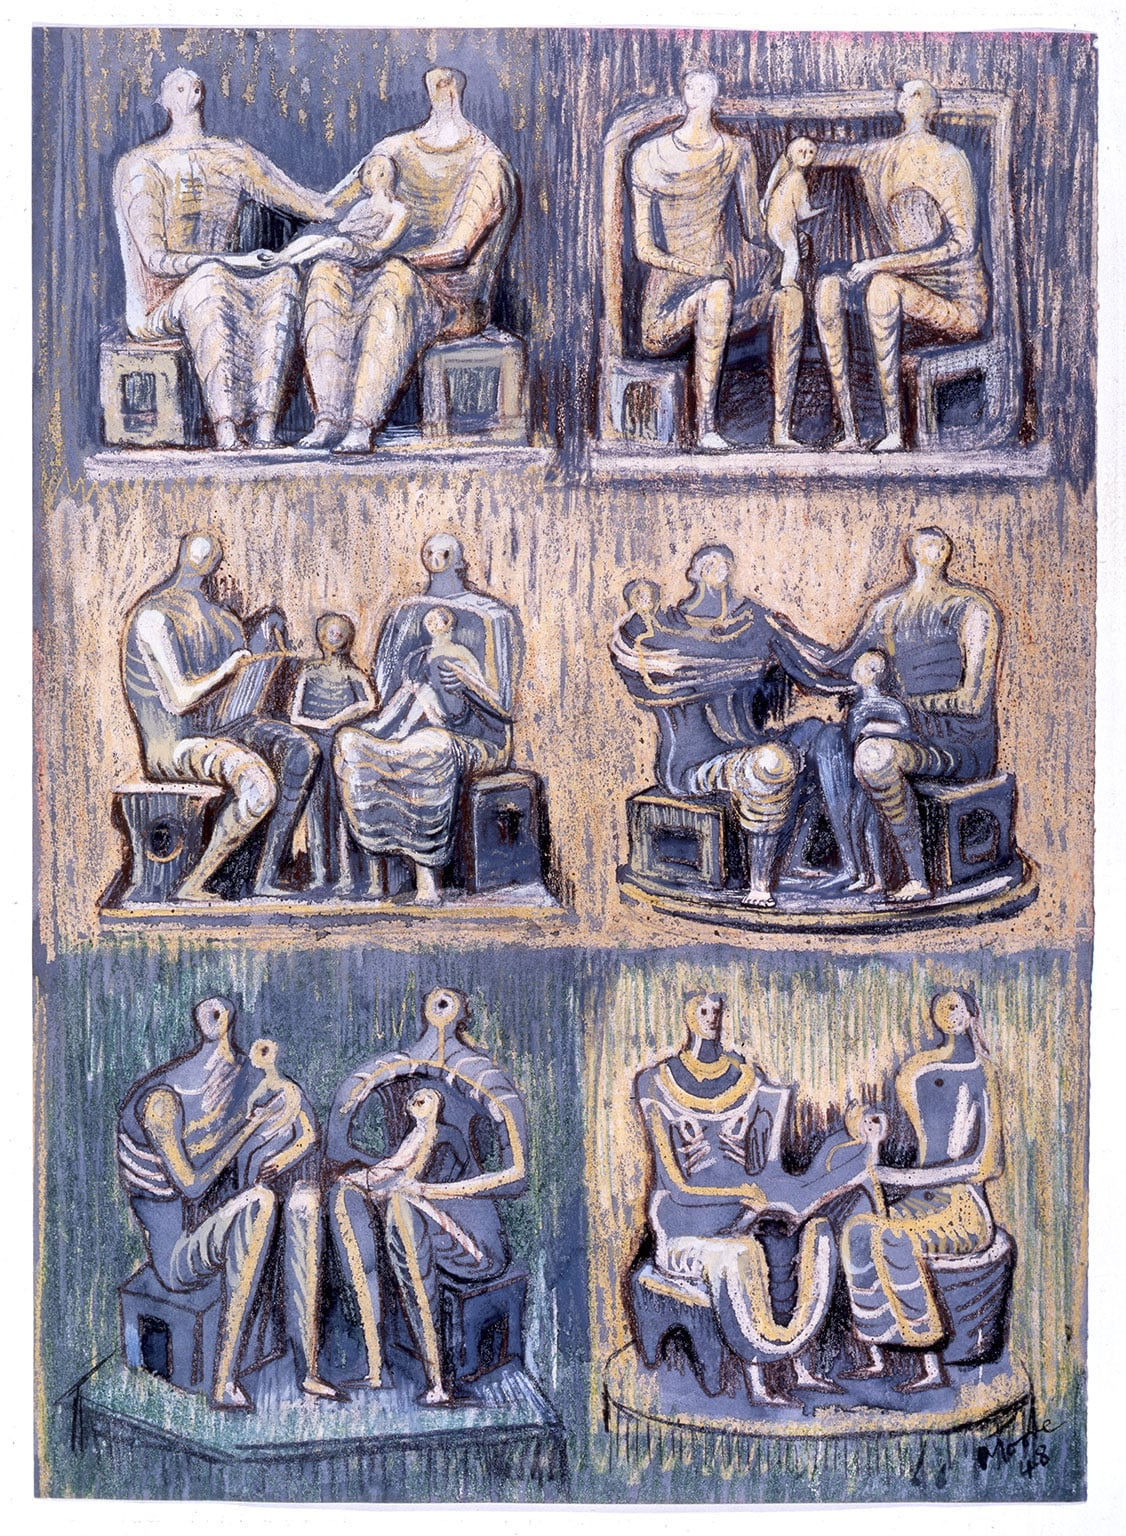 Henry Moore, Six Studies for Family Group, 1948